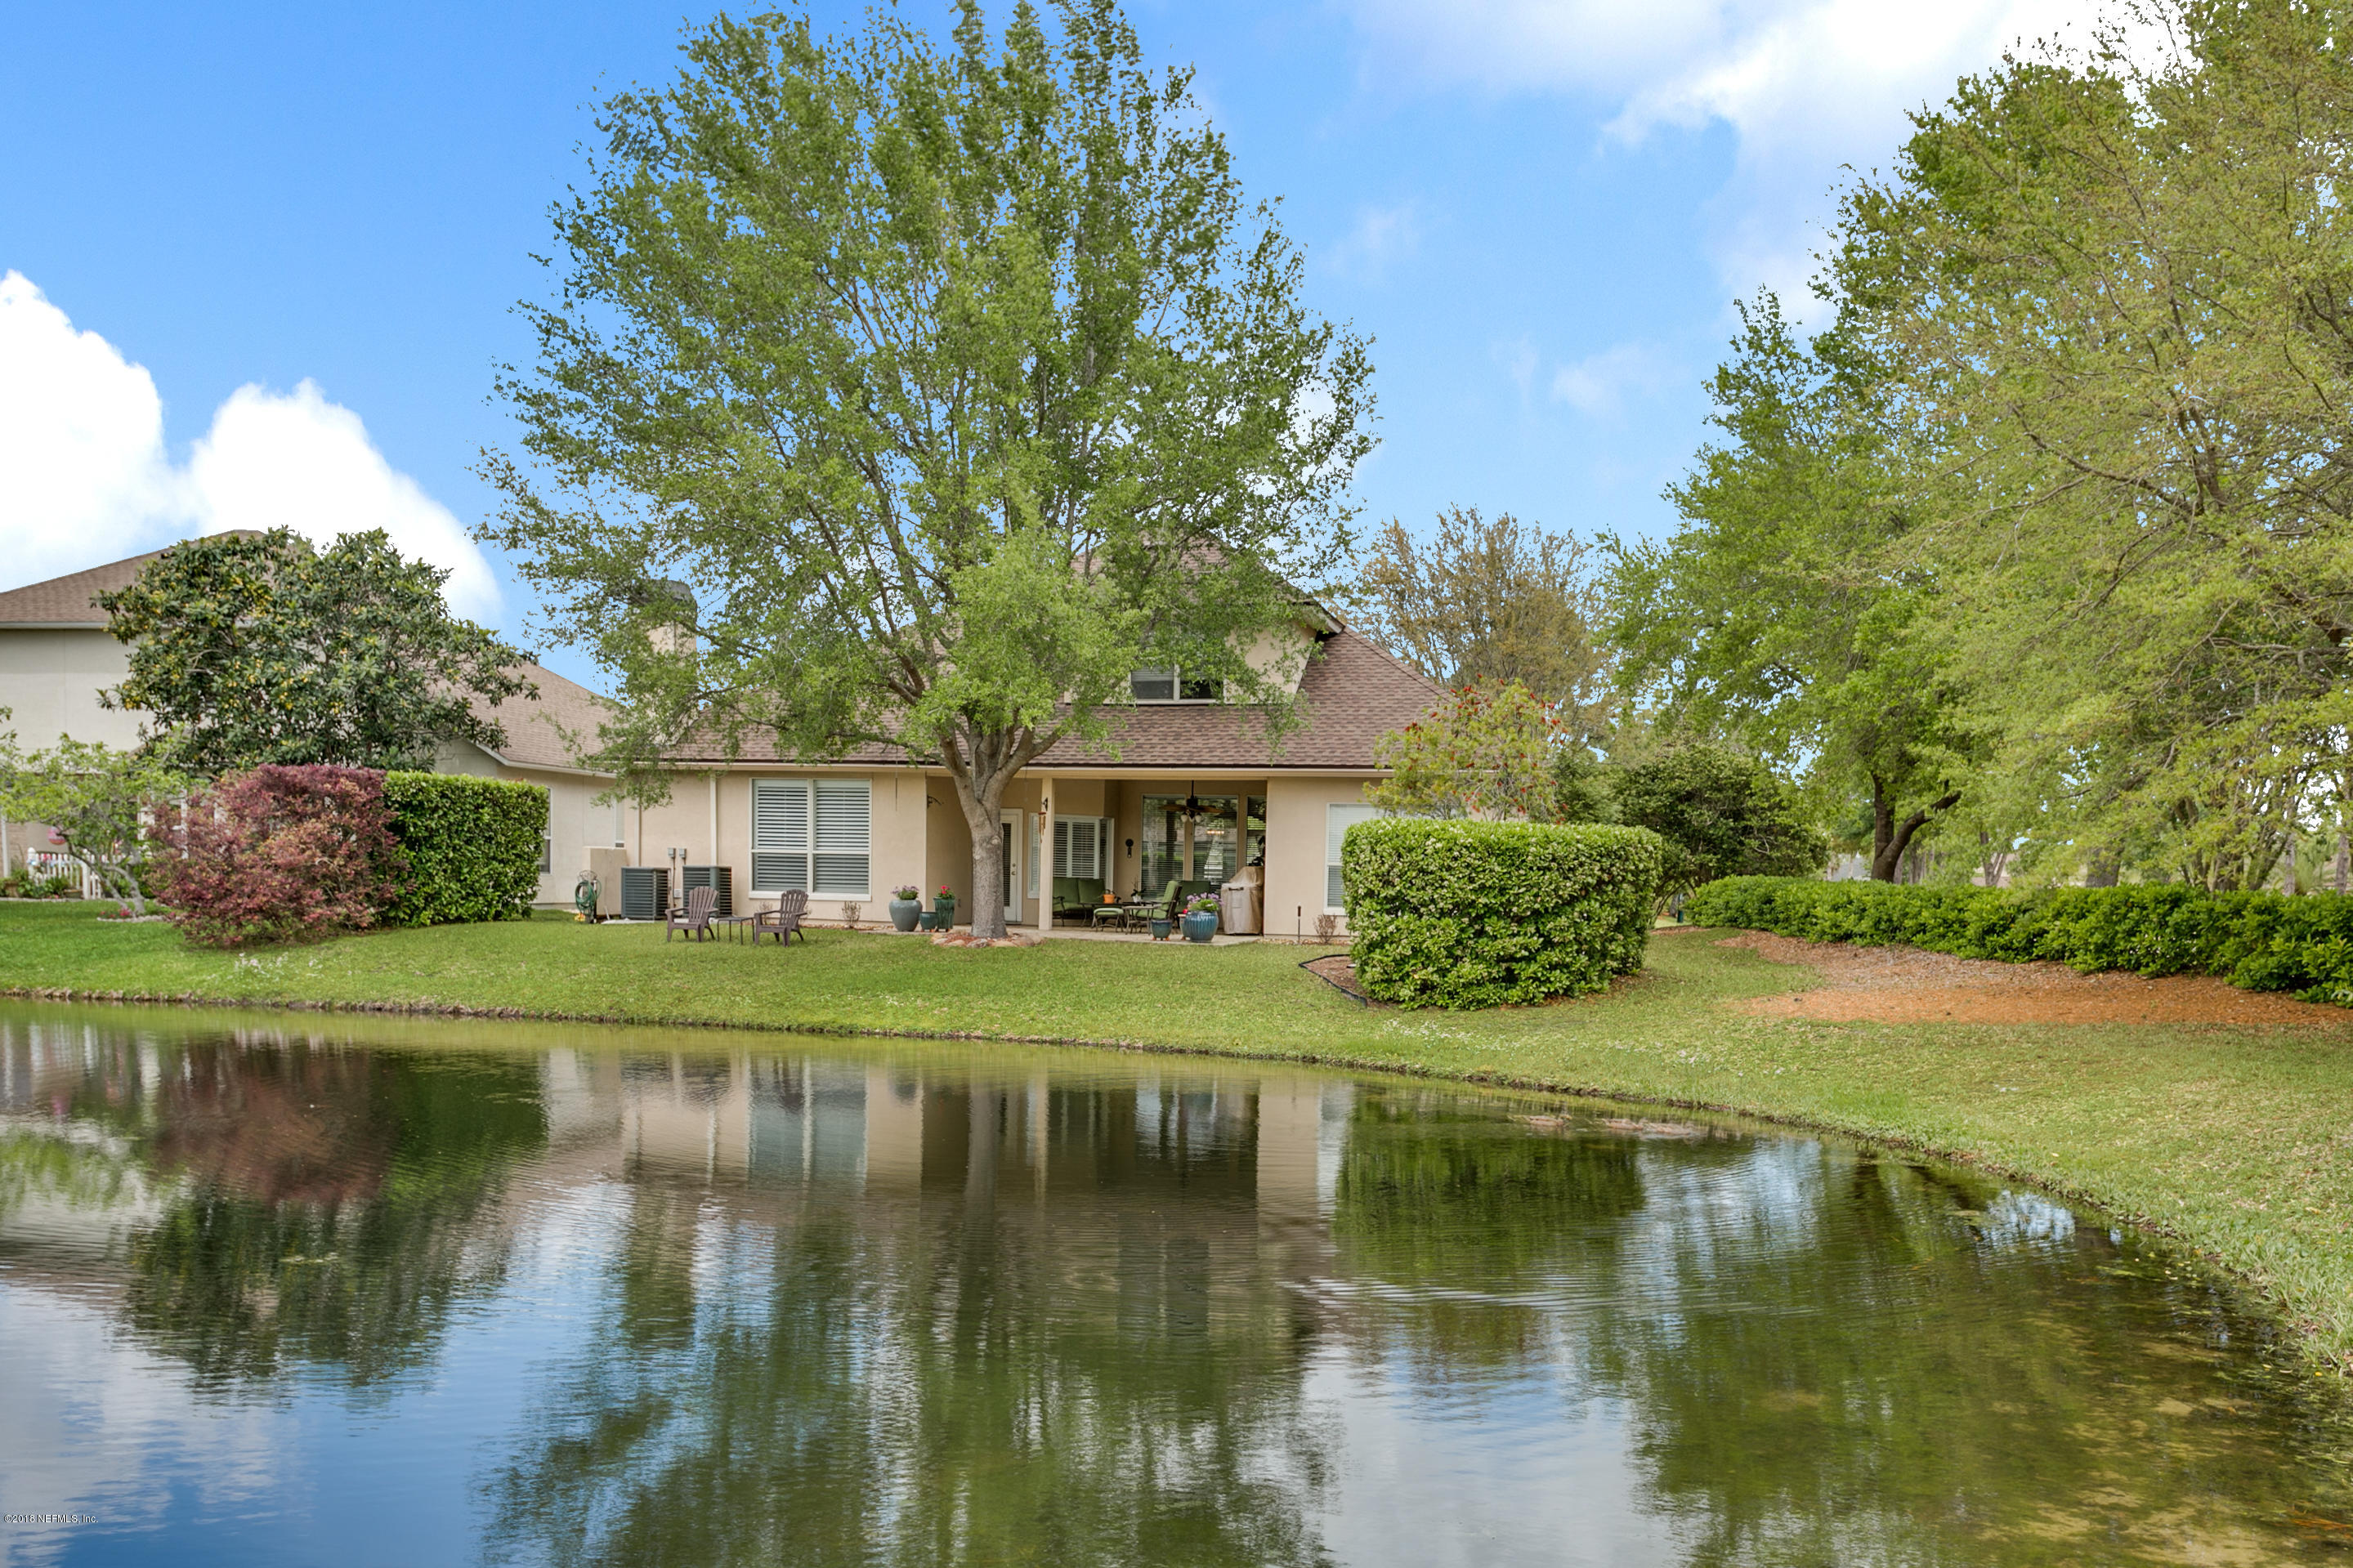 13874 WEEPING WILLOW, JACKSONVILLE, FLORIDA 32224, 4 Bedrooms Bedrooms, ,3 BathroomsBathrooms,Residential - single family,For sale,WEEPING WILLOW,929433